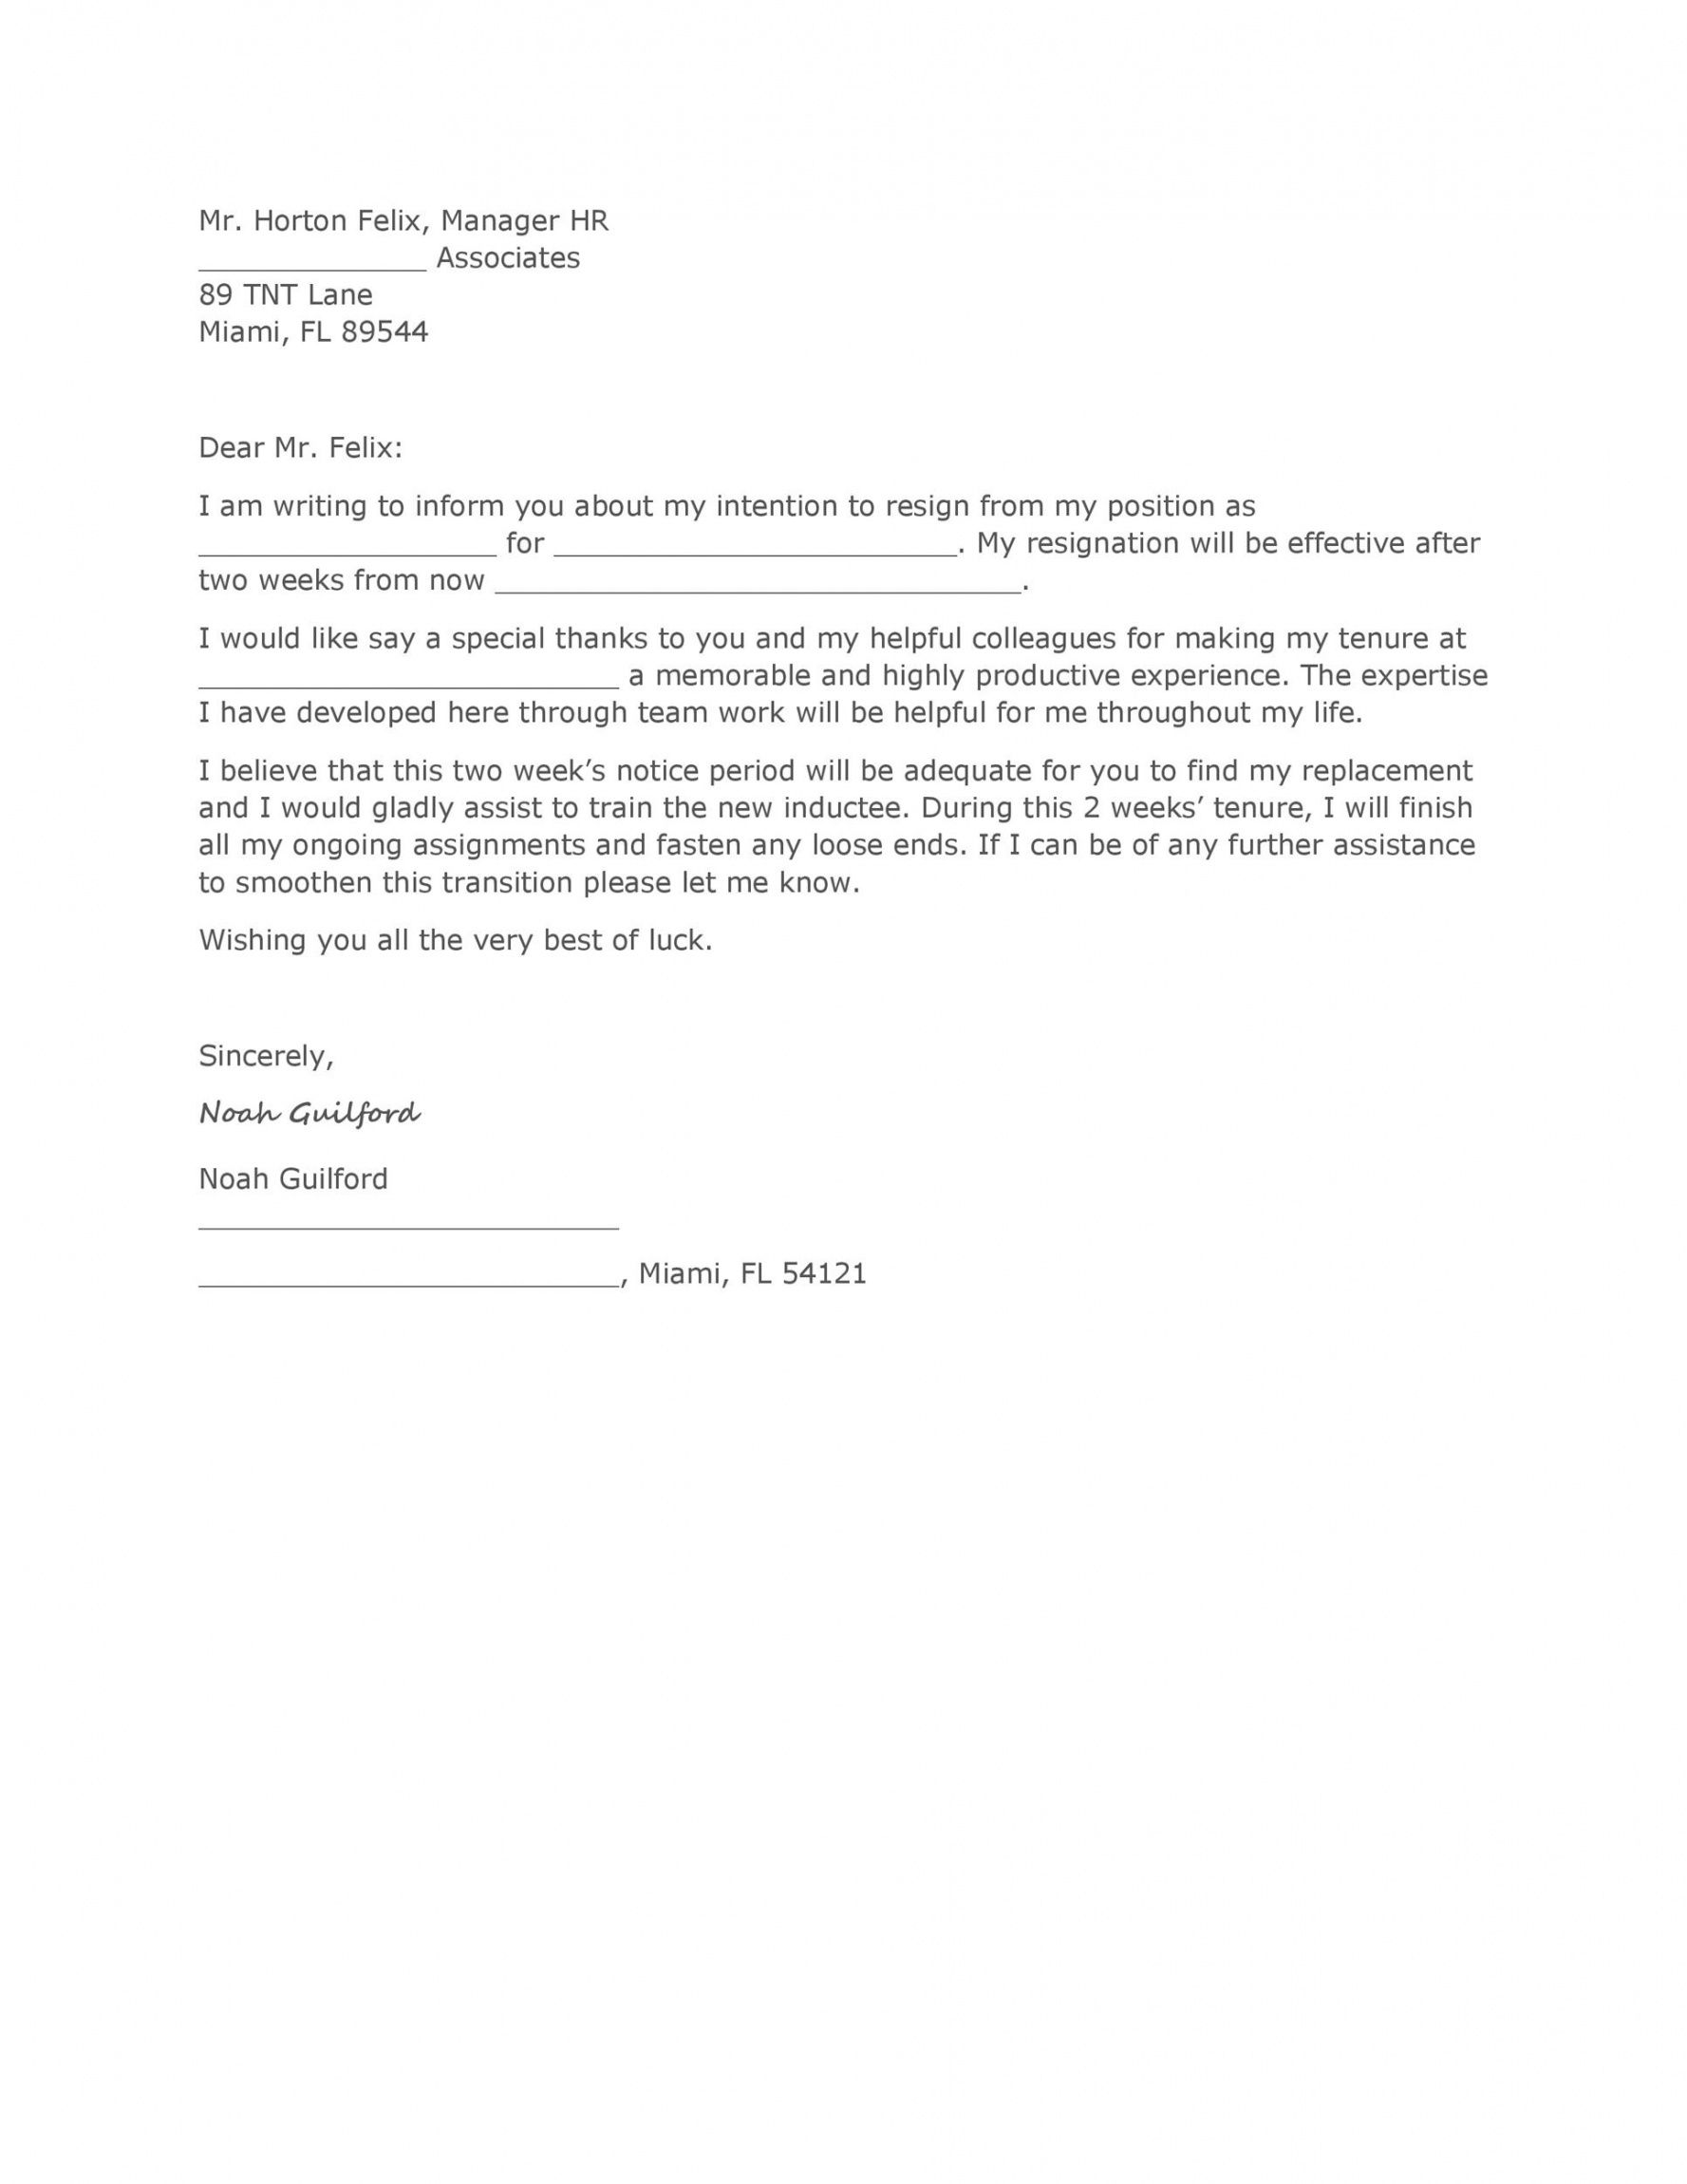 editable 40 two weeks notice letters & resignation letter templates forced resignation letter template example